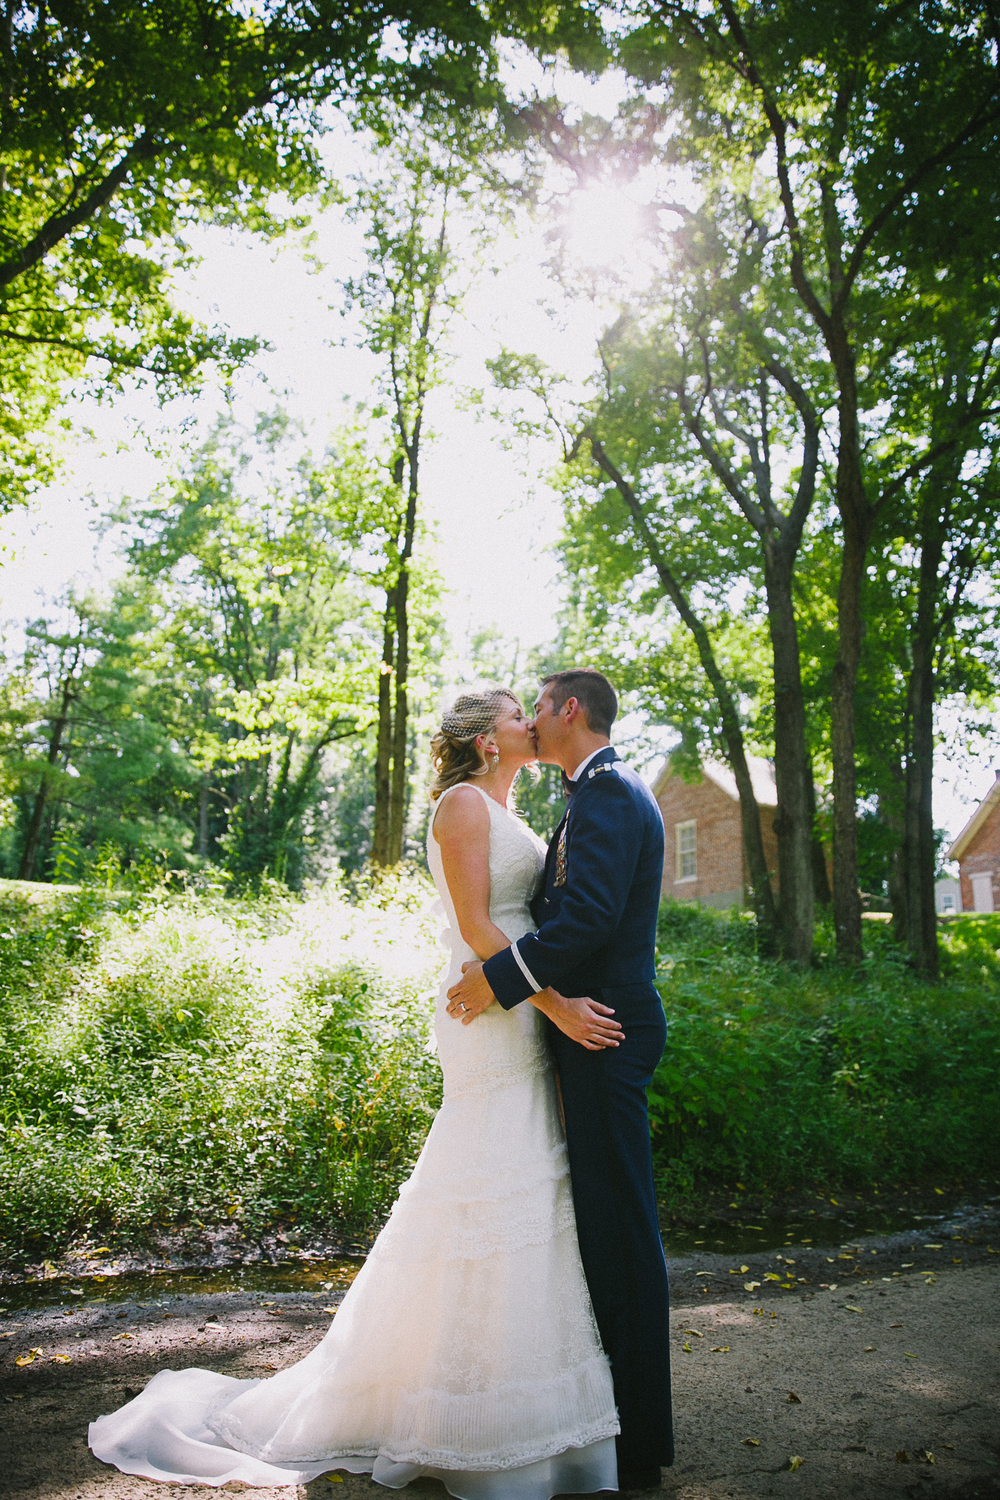 NinaLilyPhotography_LockridgeParkWedding_Blog57